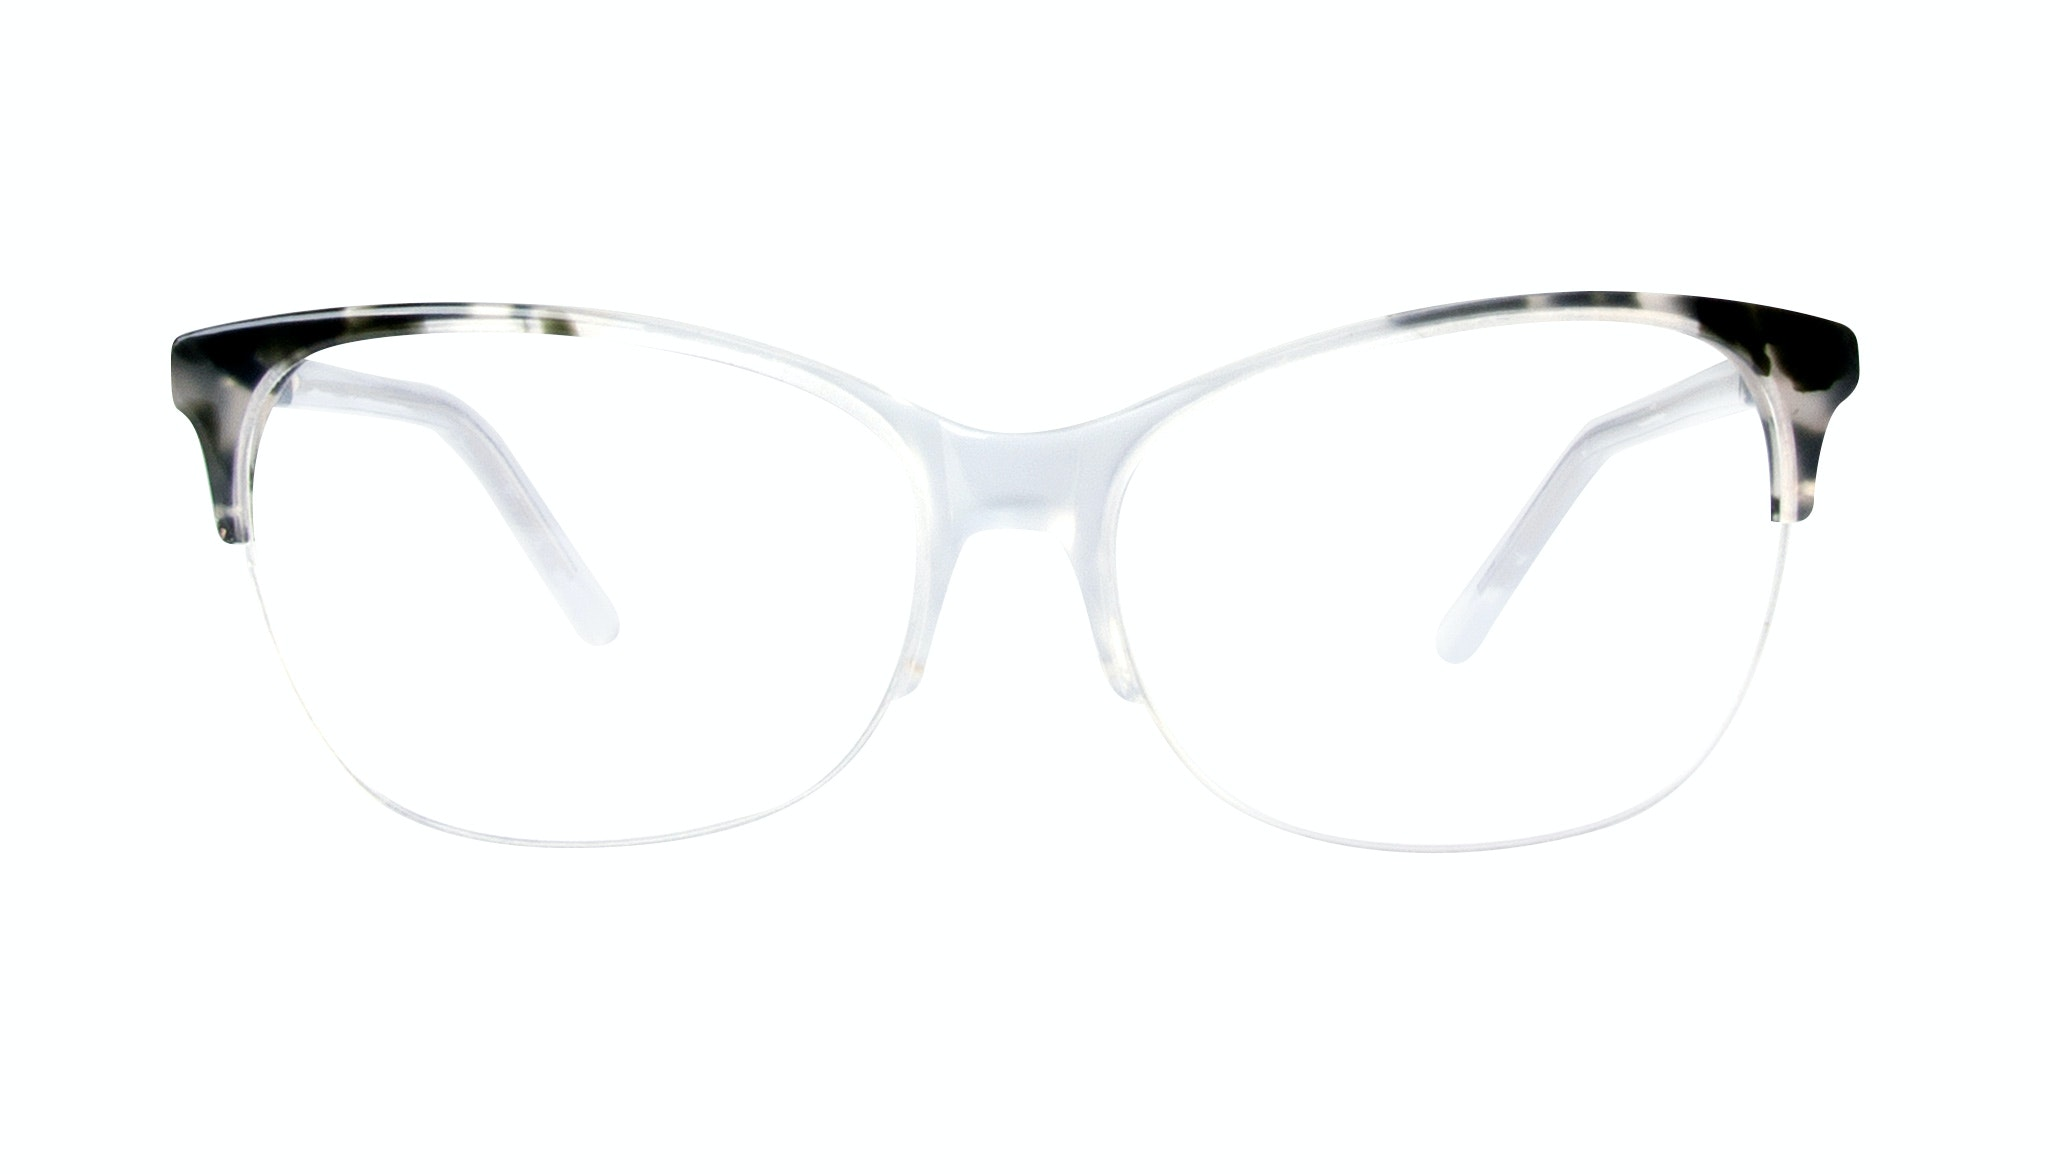 Affordable Fashion Glasses Cat Eye Rectangle Semi-Rimless Eyeglasses Women Flair Light Smokey Tort Front